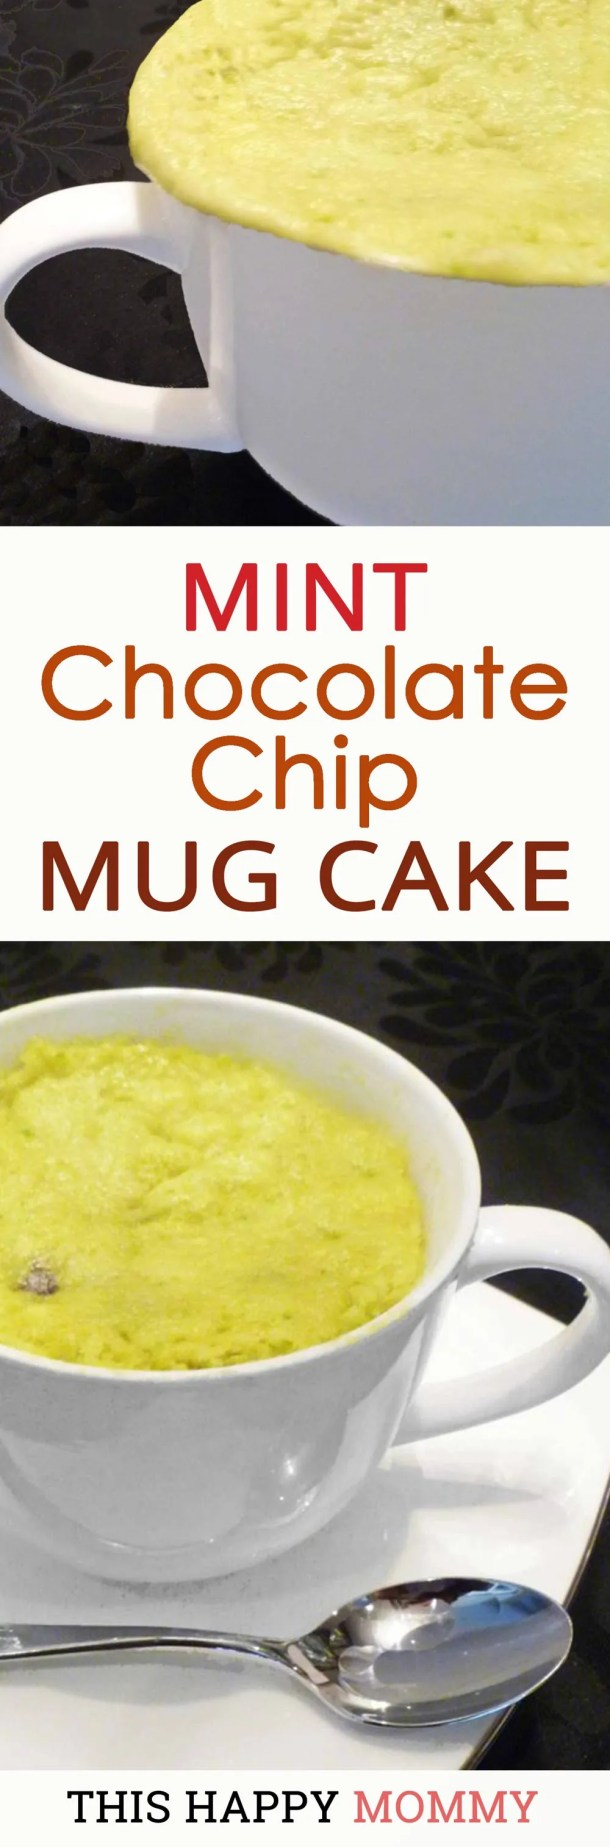 We love this cake! It's minty, chocolatey, and green! Mint Chocolate Chip Mug Cake is a light and fluffy cake filled with mint-flavored batter and perfectly melted chocolate chips. | thishappymommy.com